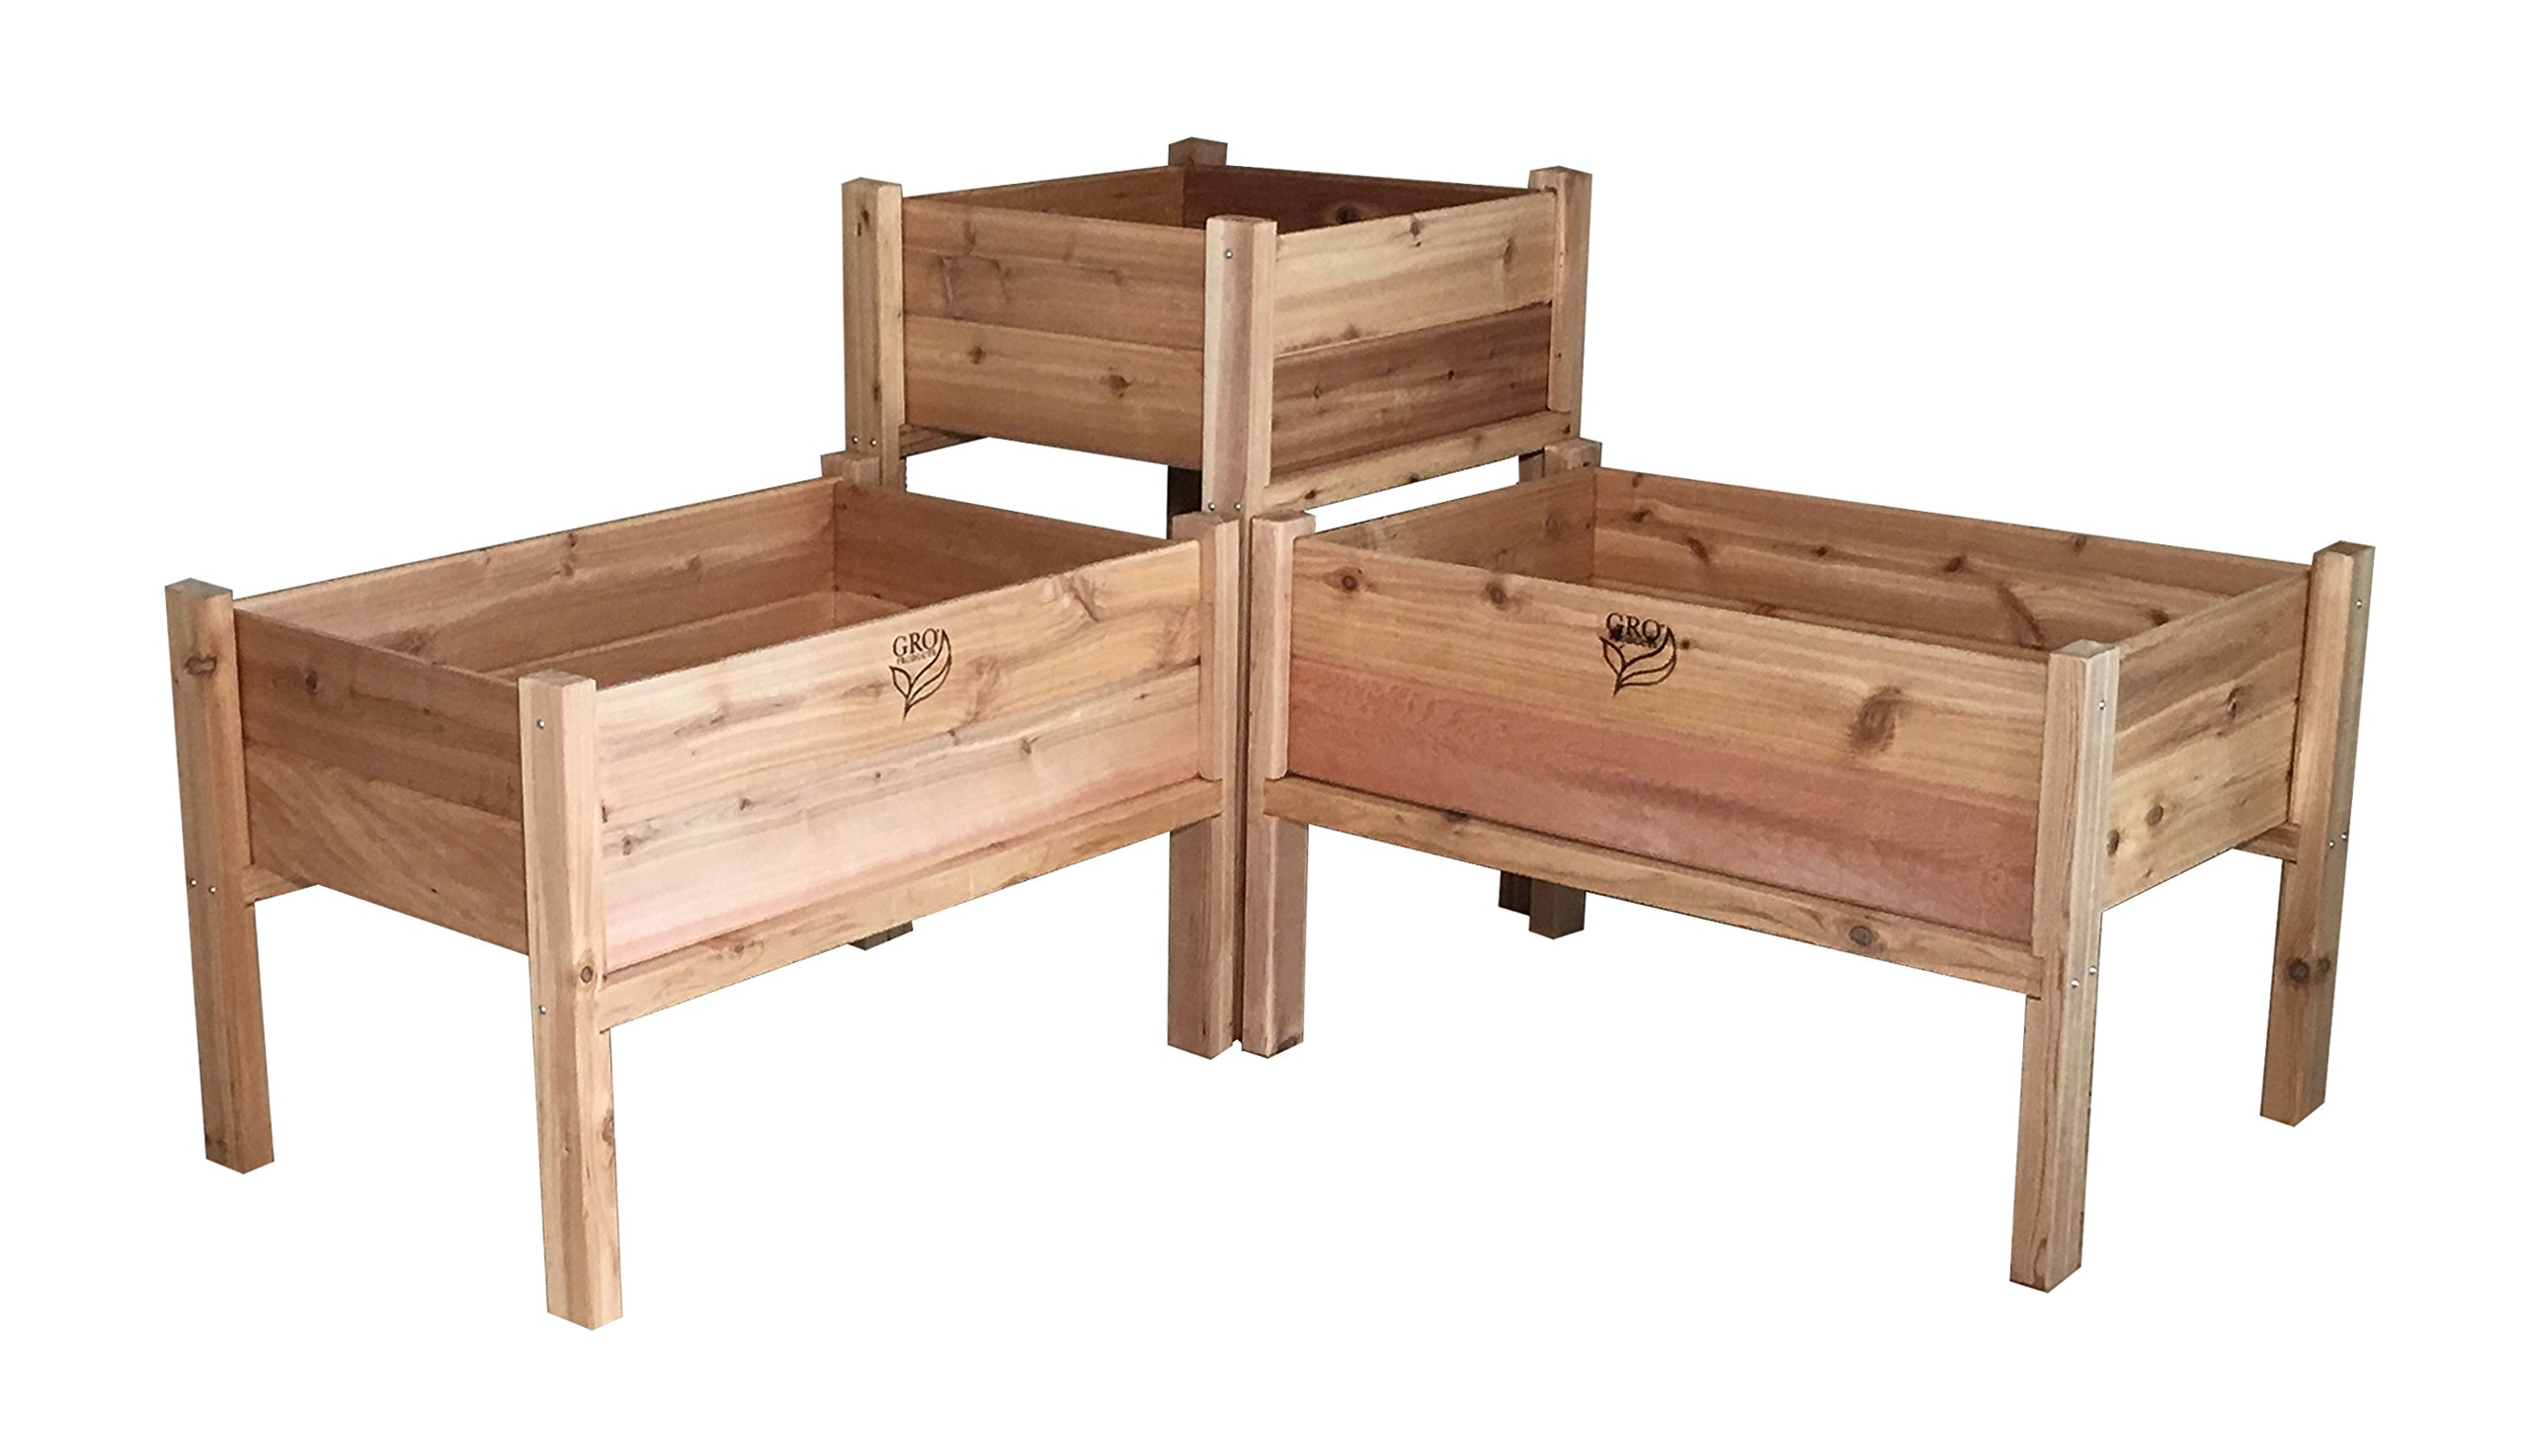 GRO Products FP-EGB-COMBO Cedar Elevated Garden Bed Combo by Gro